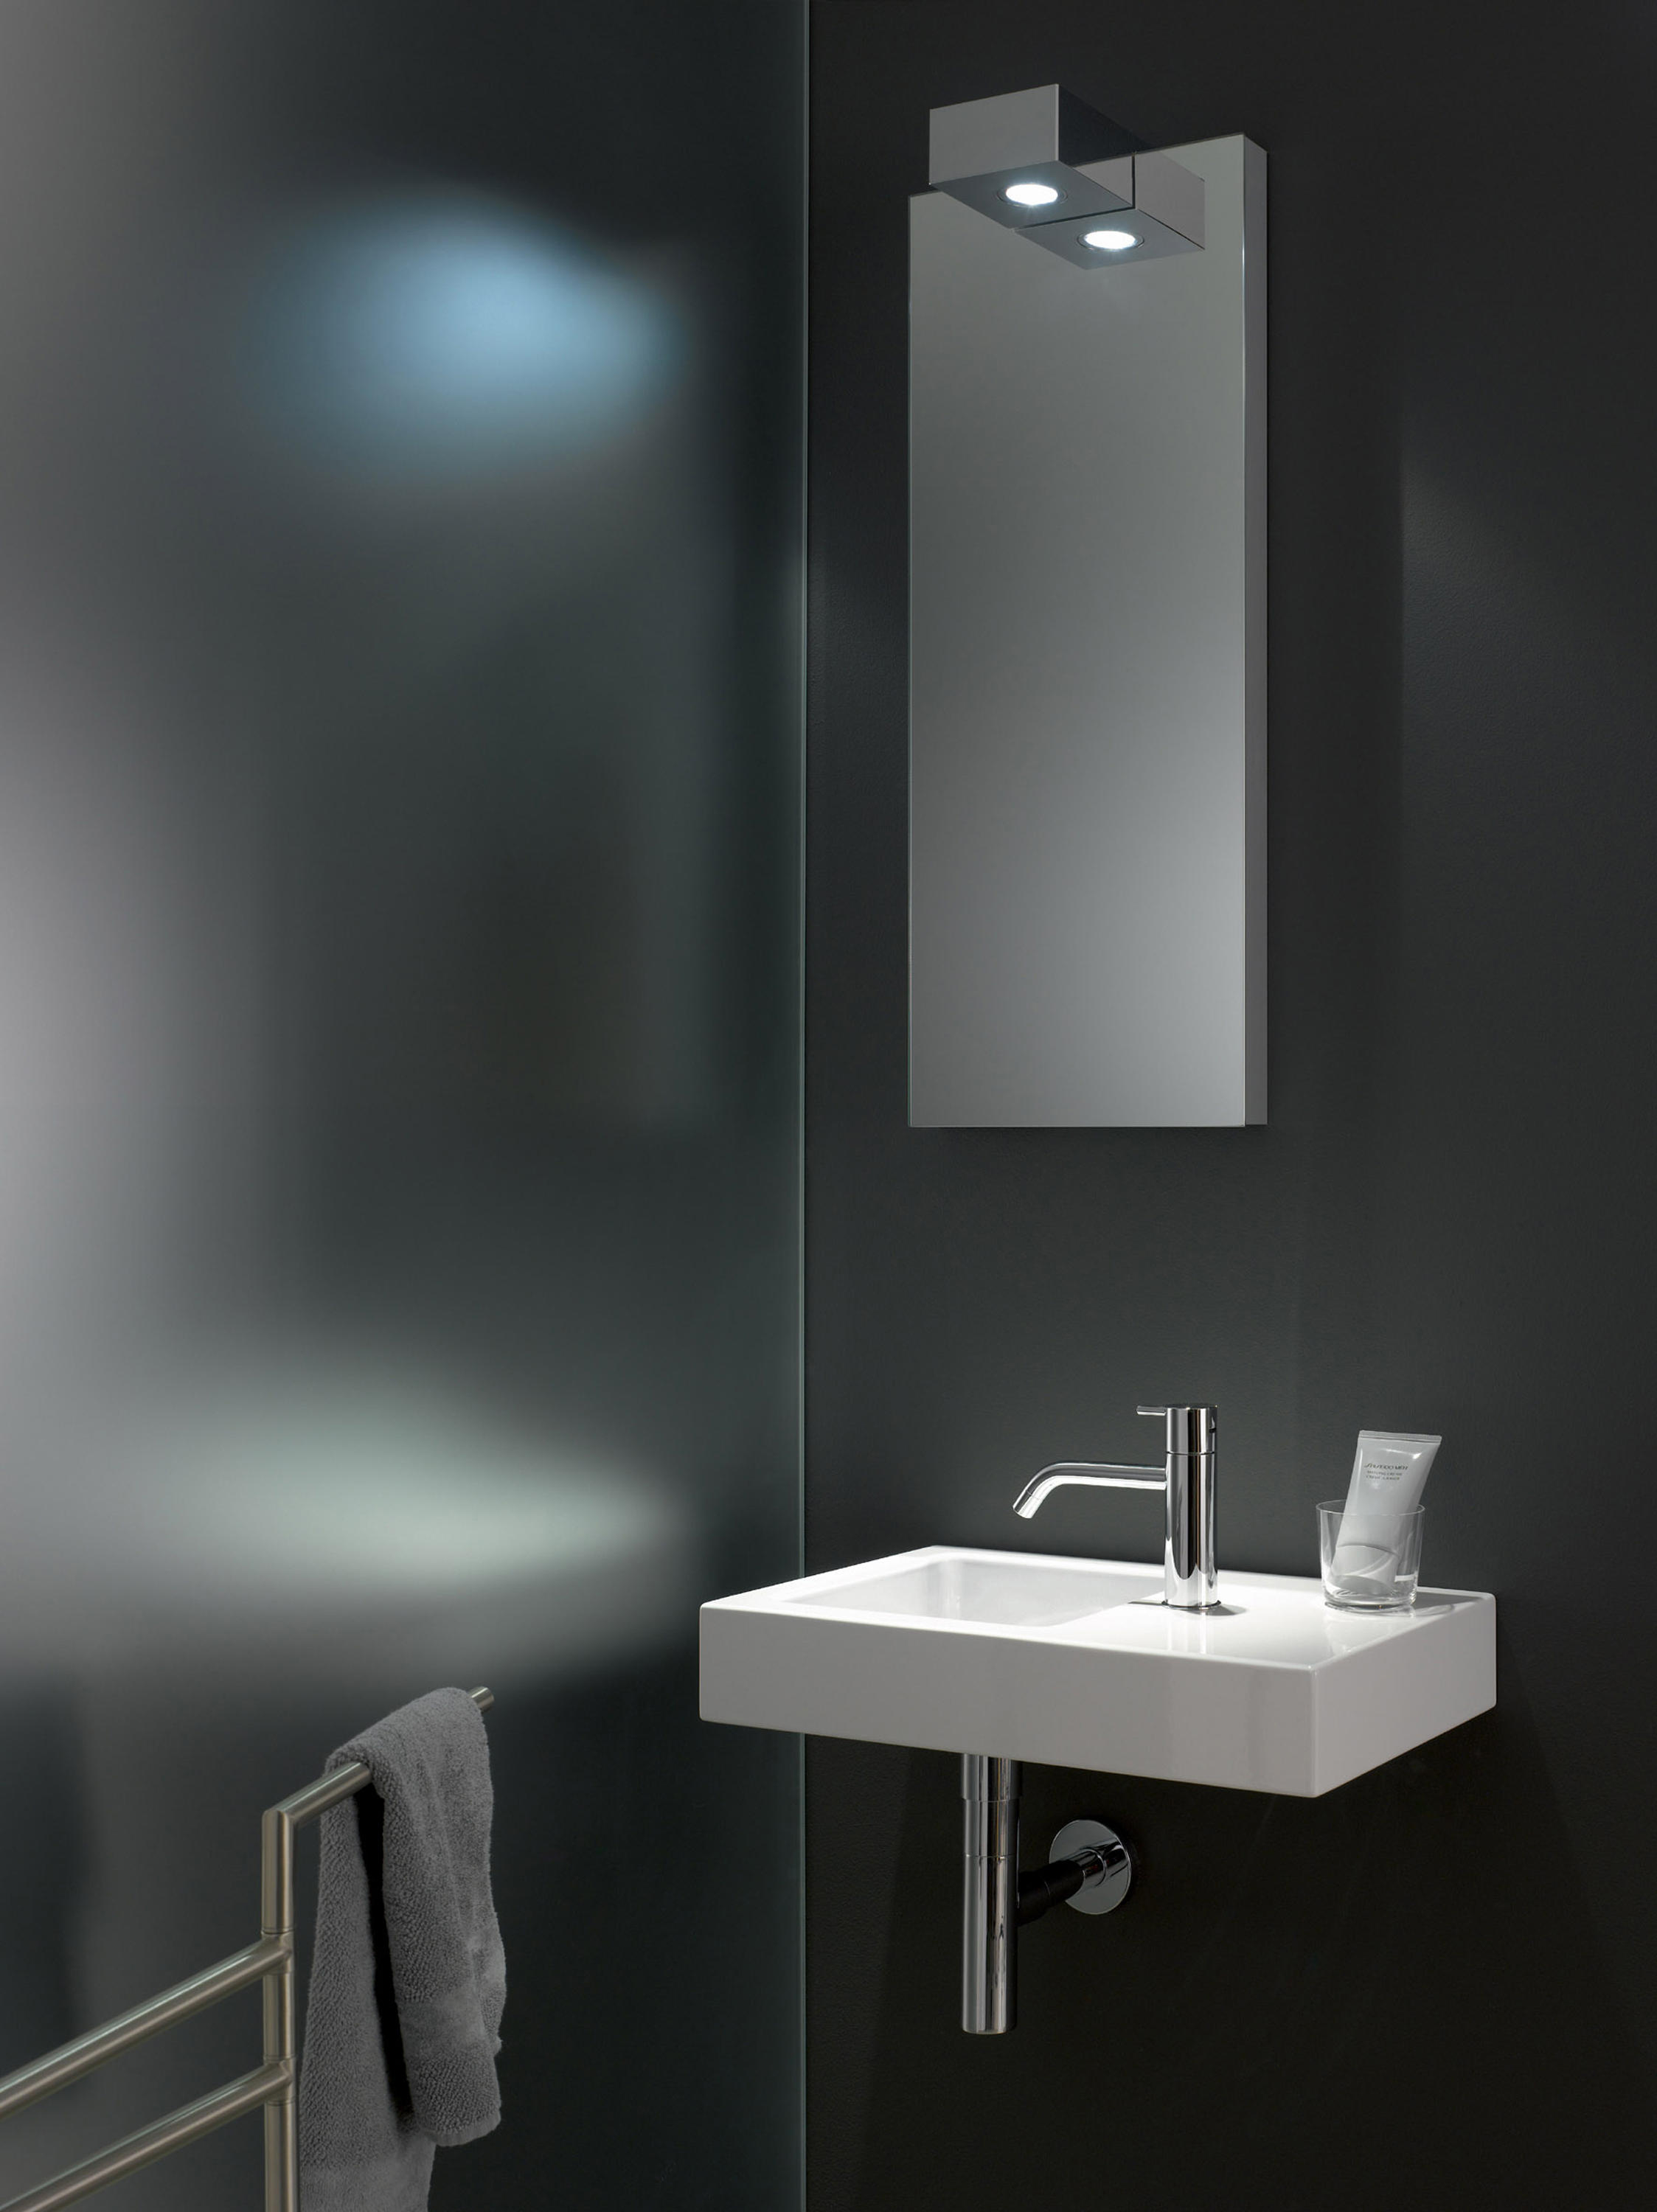 wt qs450 wash basins from alape architonic. Black Bedroom Furniture Sets. Home Design Ideas